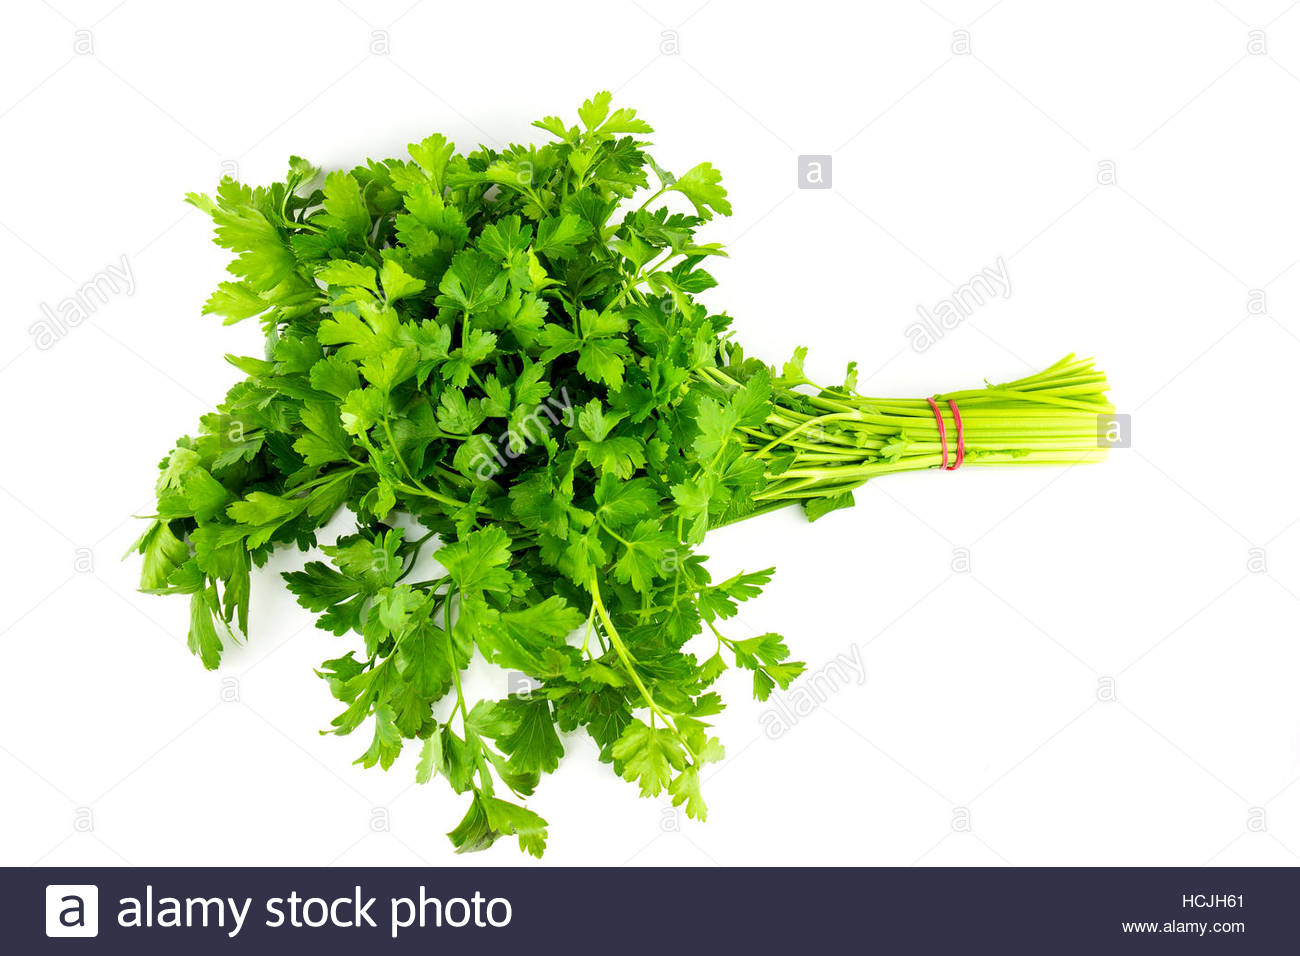 Bunch of parsley, garden parsley Isolated on White, parsley cut out - Stock Image